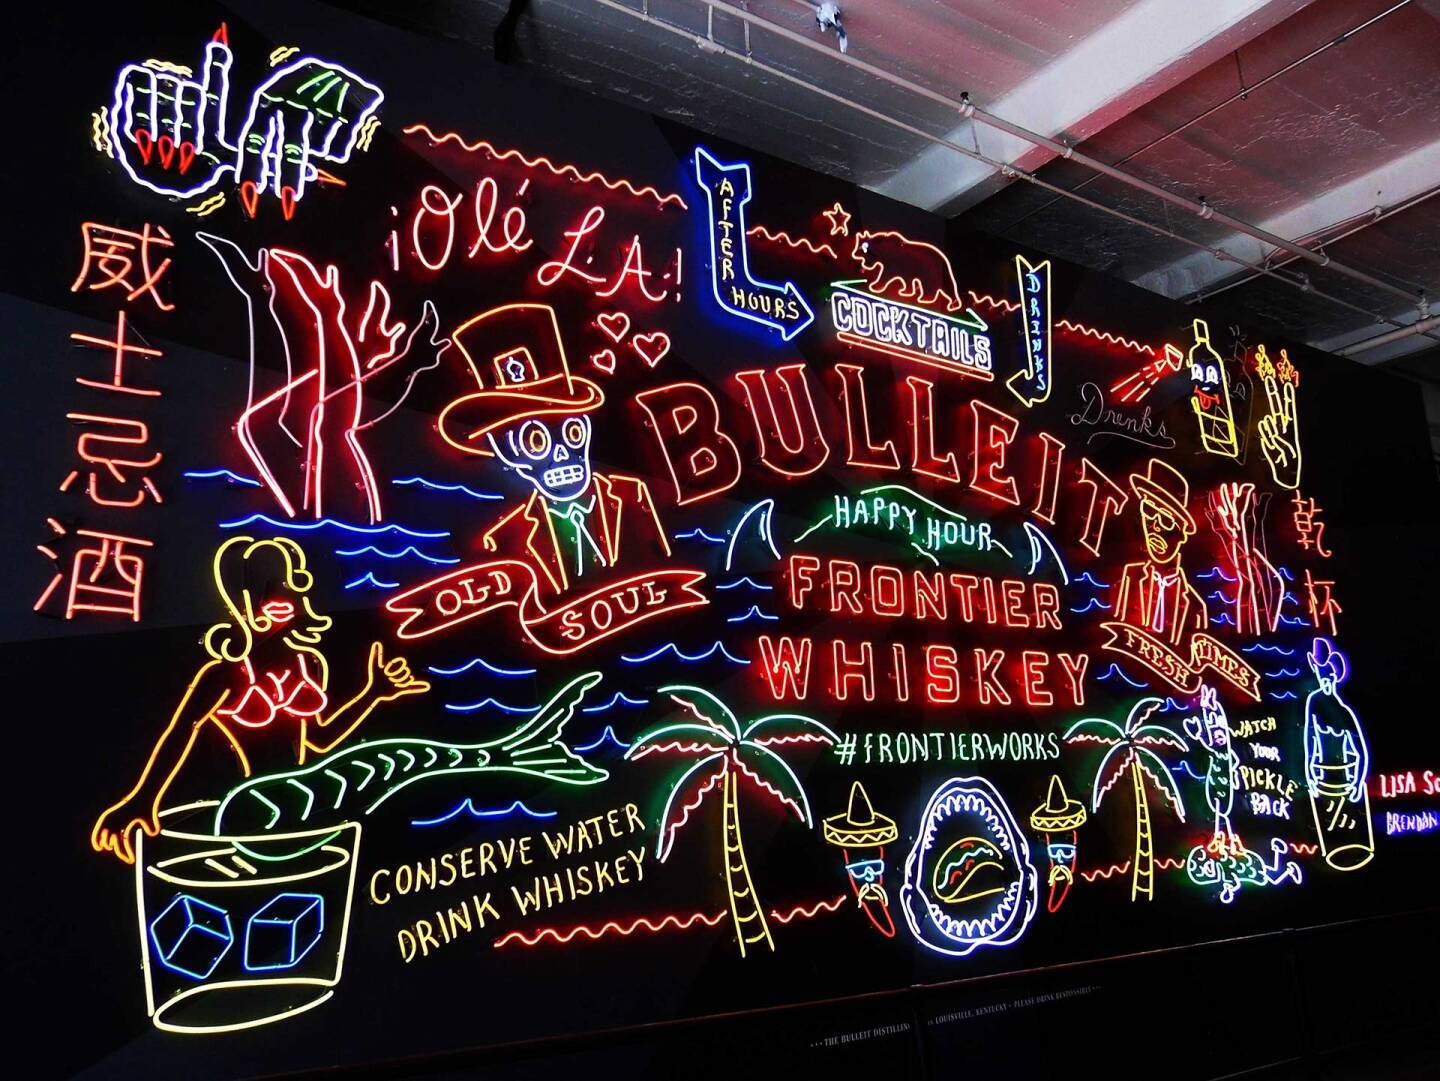 Bulleit Frontier Works neon sign by Schulte and Donnelly at Grand Central Market | Sandi Hemmerlein